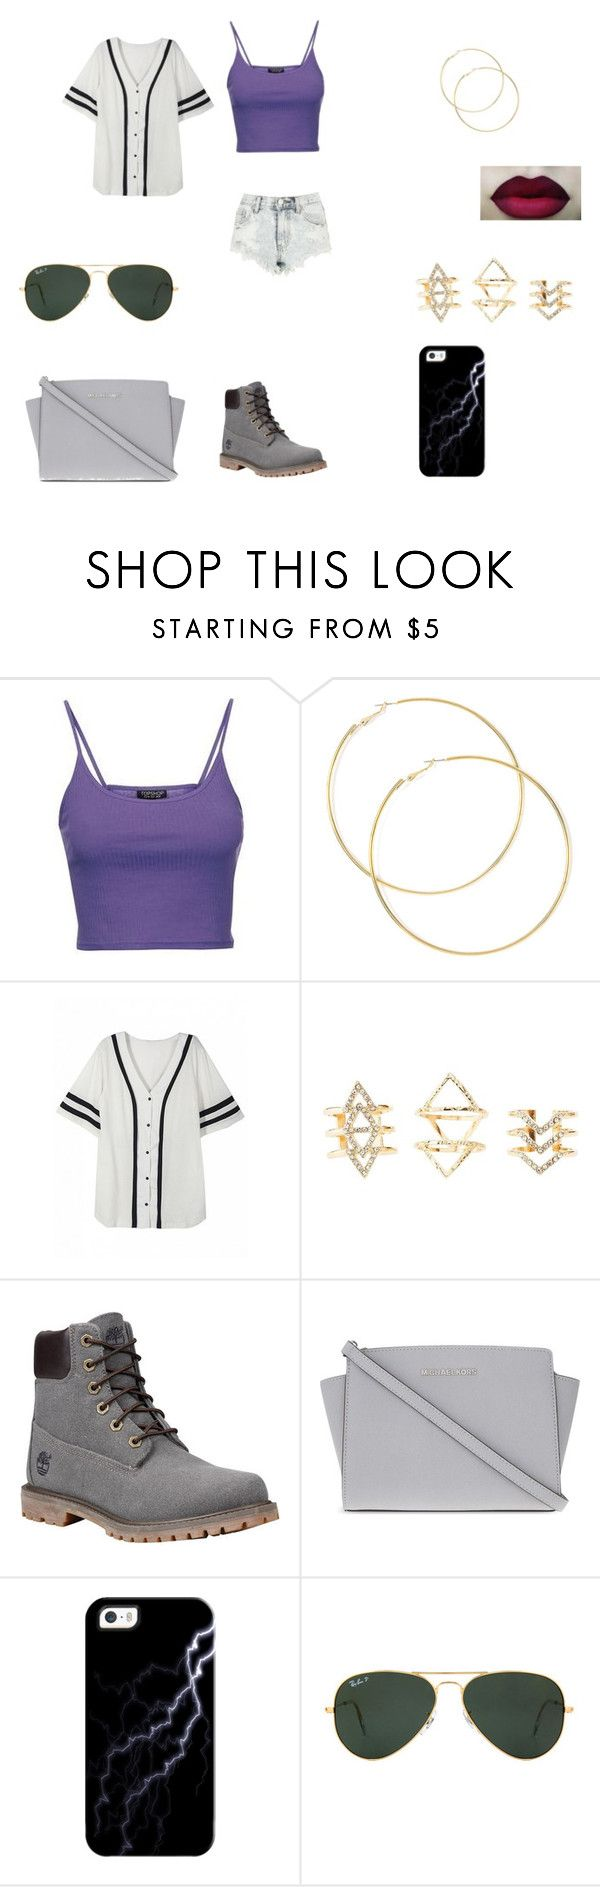 """Cookout outfit"" by junebug02 ❤ liked on Polyvore featuring Topshop, Charlotte Russe, Timberland, MICHAEL Michael Kors, Casetify and Ray-Ban"